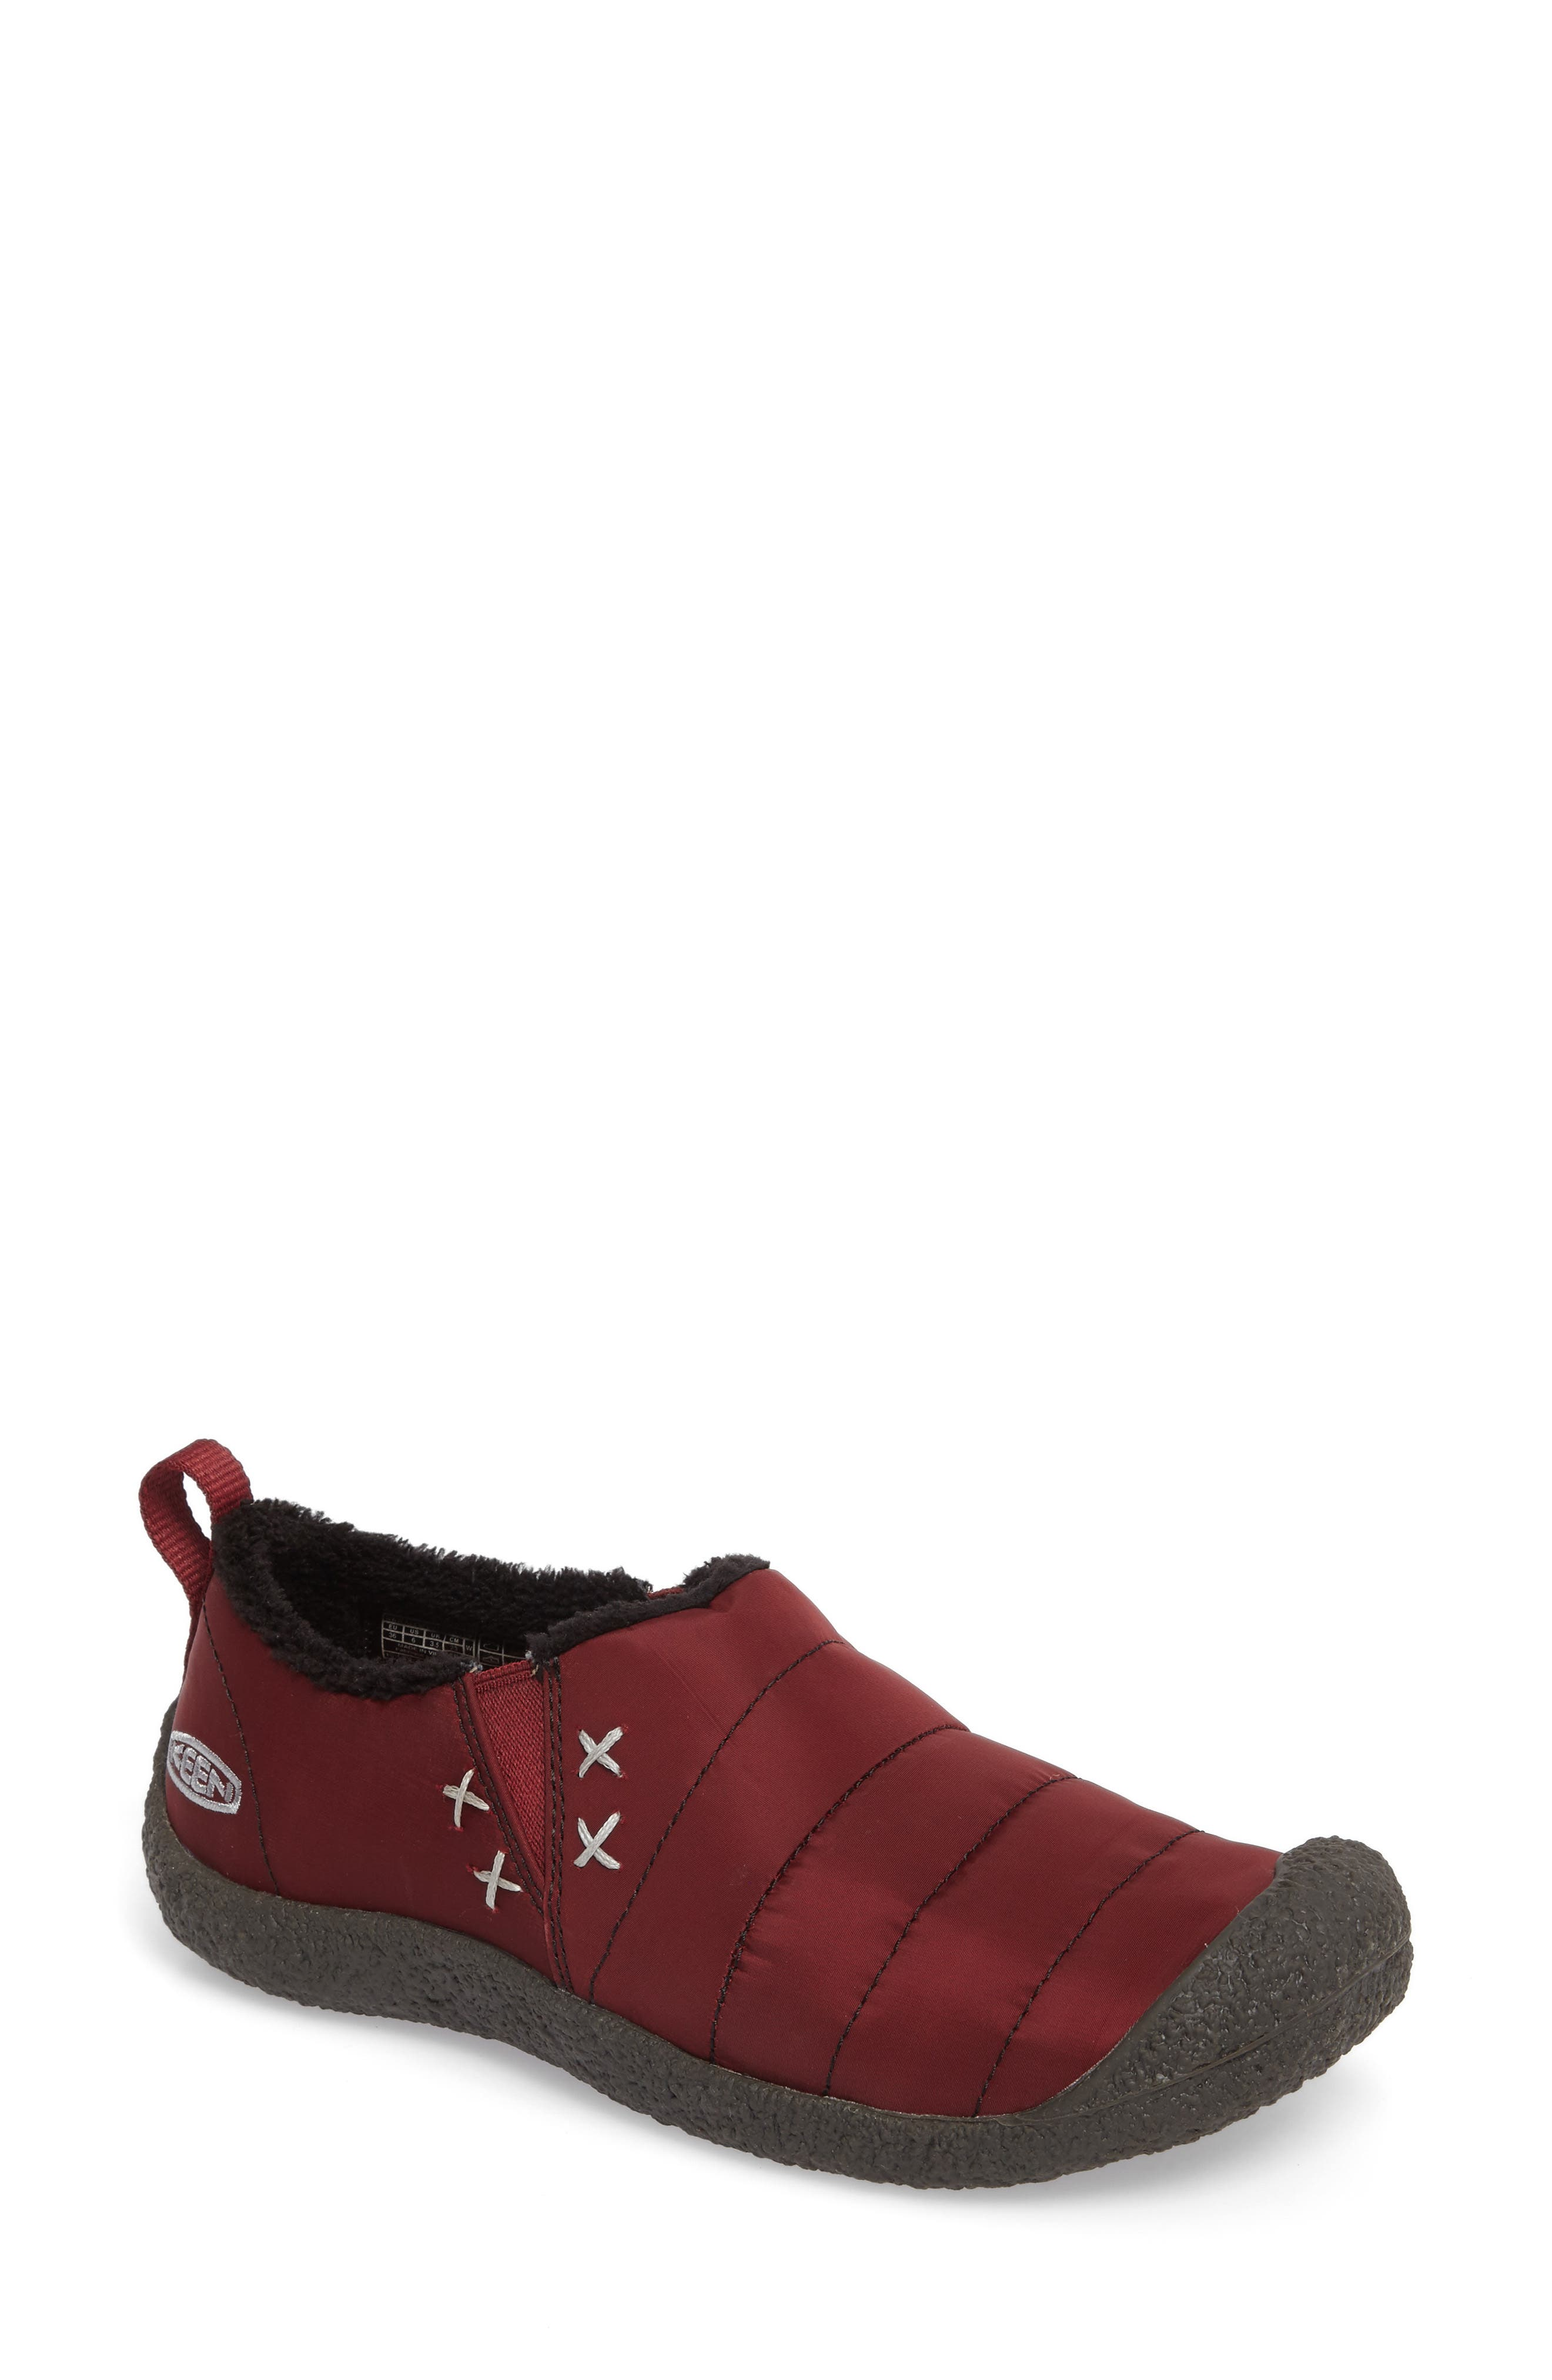 Main Image - Keen Howser II Water-Resistant Round Toe Clog (Women)